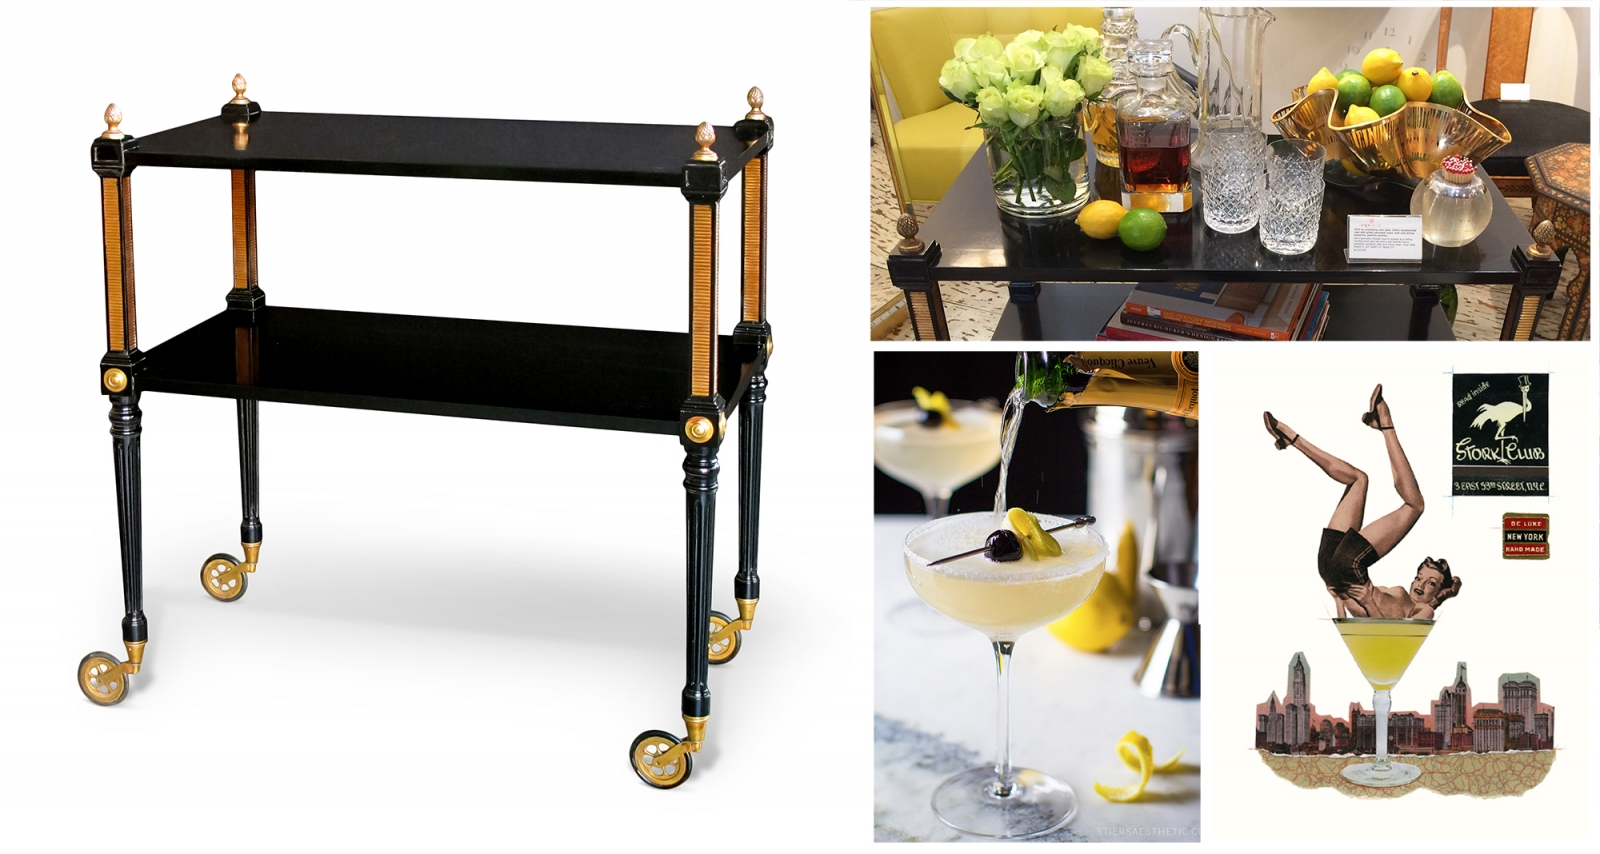 French Forties bar cart in the Manner of Maison Jansen, The French 75 cocktail, The Stork Club